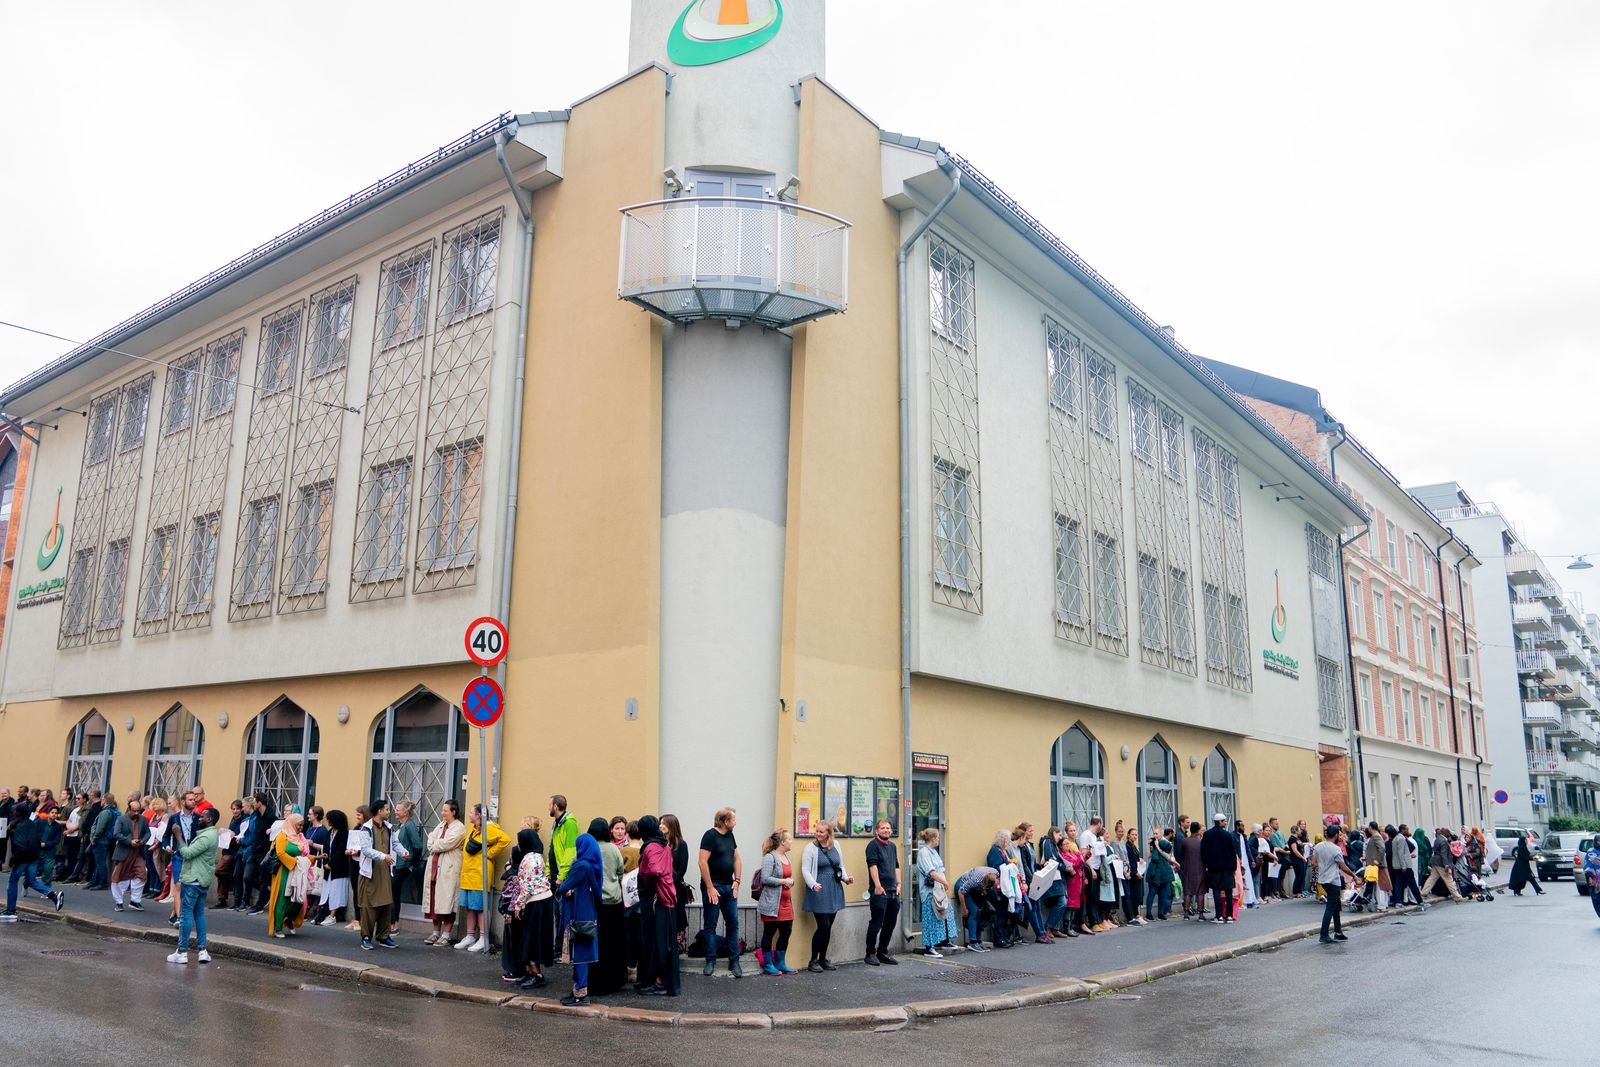 People gather to show support, outside the mosque Islamic Cultural Centre in Oslo, Sunday, Aug. 11, 2019. One person was shot and lightly injured at a mosque in a western suburb of the capital, Oslo on Saturday.{ } (Fredrik Hagen /NTB scanpix via AP)